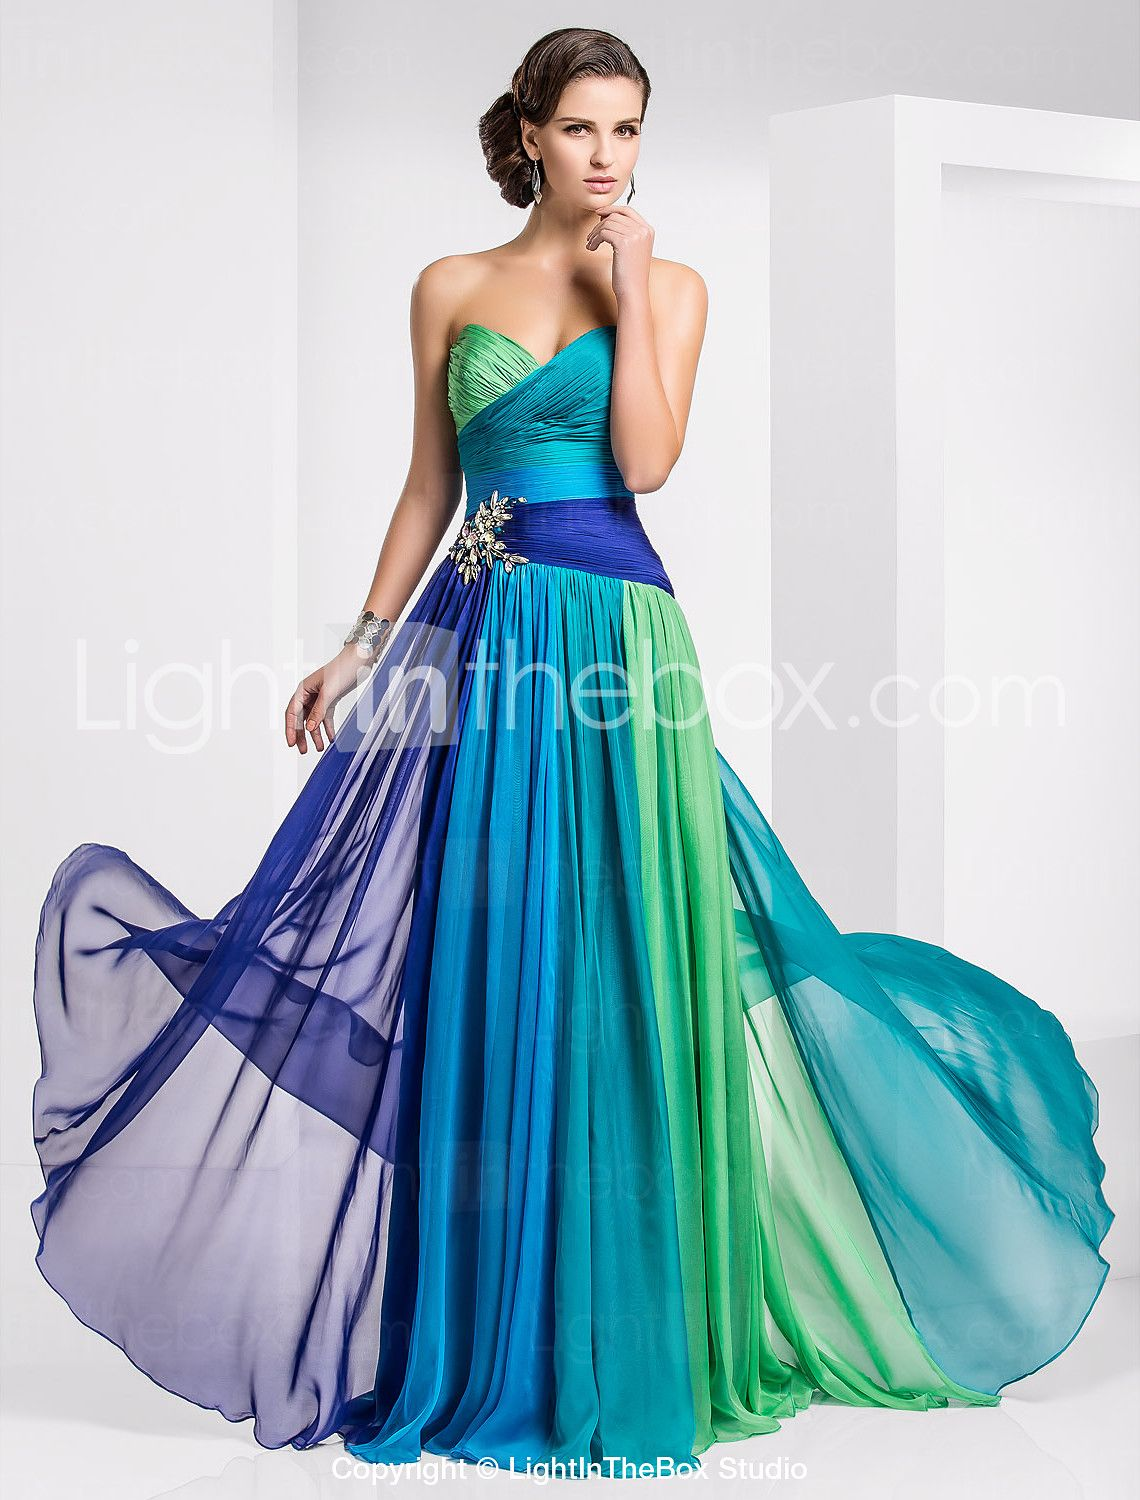 129 99 A Line Color Block Wedding Guest Formal Evening Dress Sweetheart Neckline Sleeveless Sweep Brush Train Chiffon With Pleats Ruched Crystals 2021 Chiffon Evening Dresses Formal Evening Dresses Gowns Dresses [ 1500 x 1140 Pixel ]